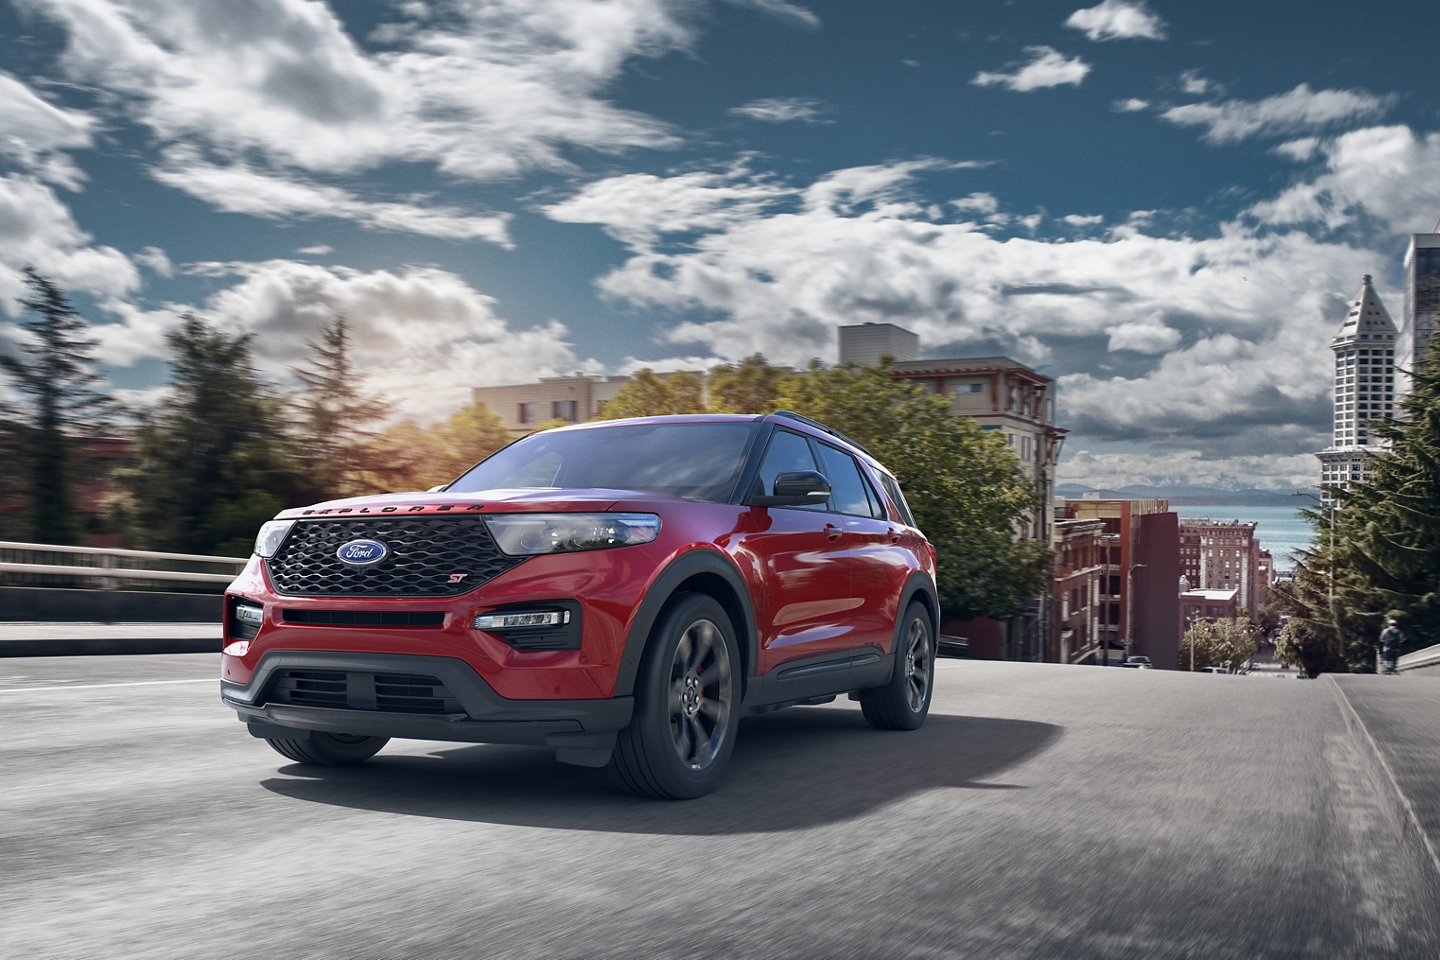 2020 ford explorer for sale at waconia ford near minneapolis